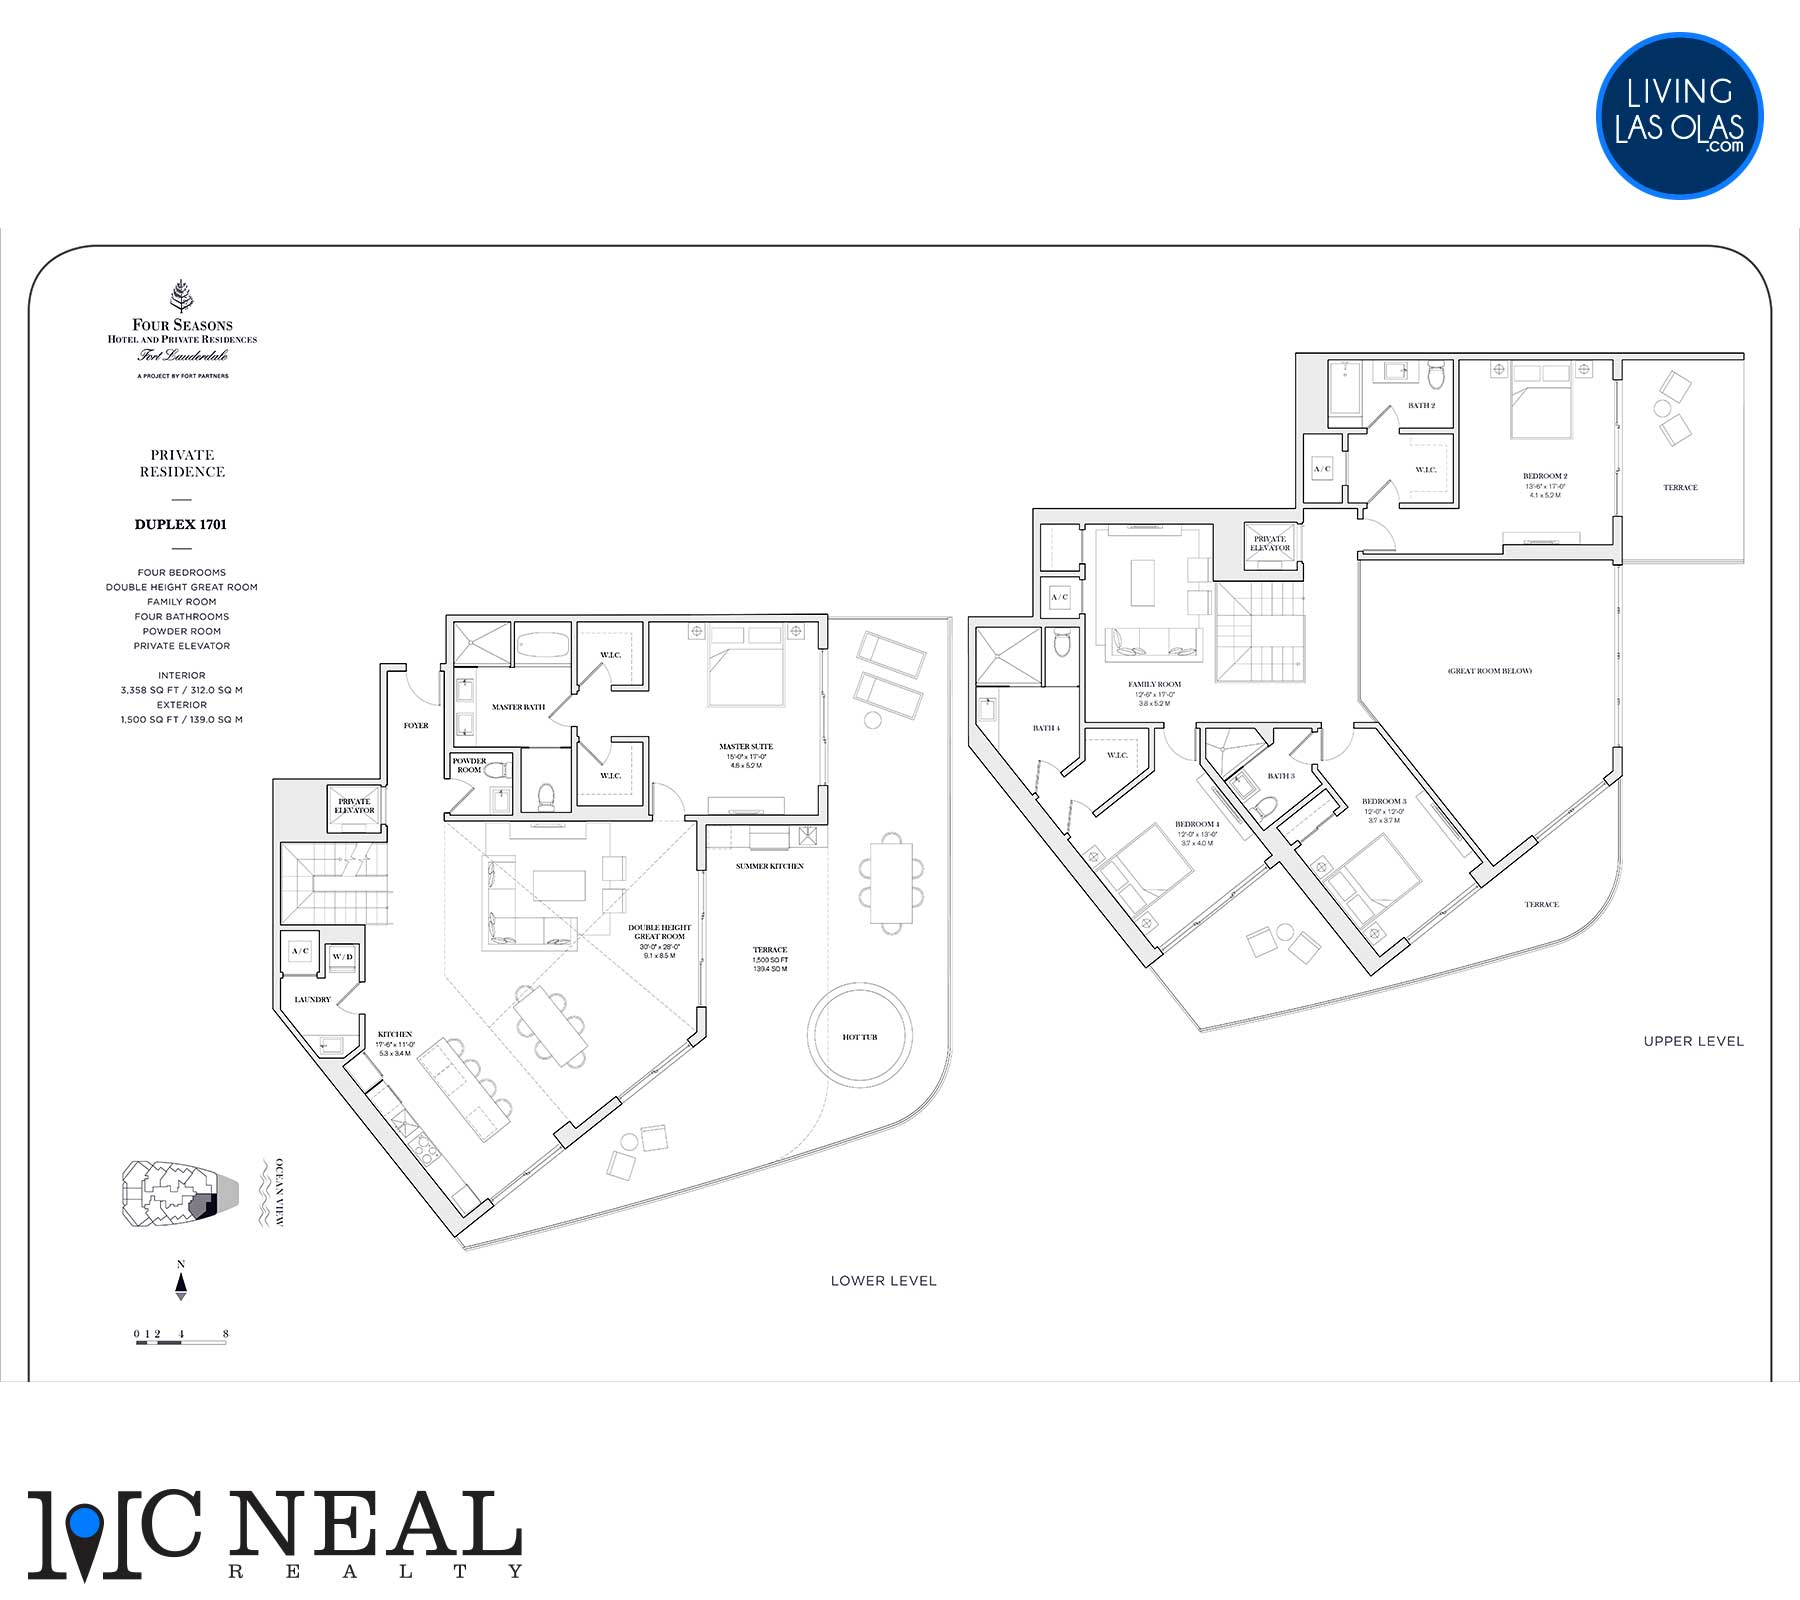 Four Seasons Private Residences Floor Plan 1701